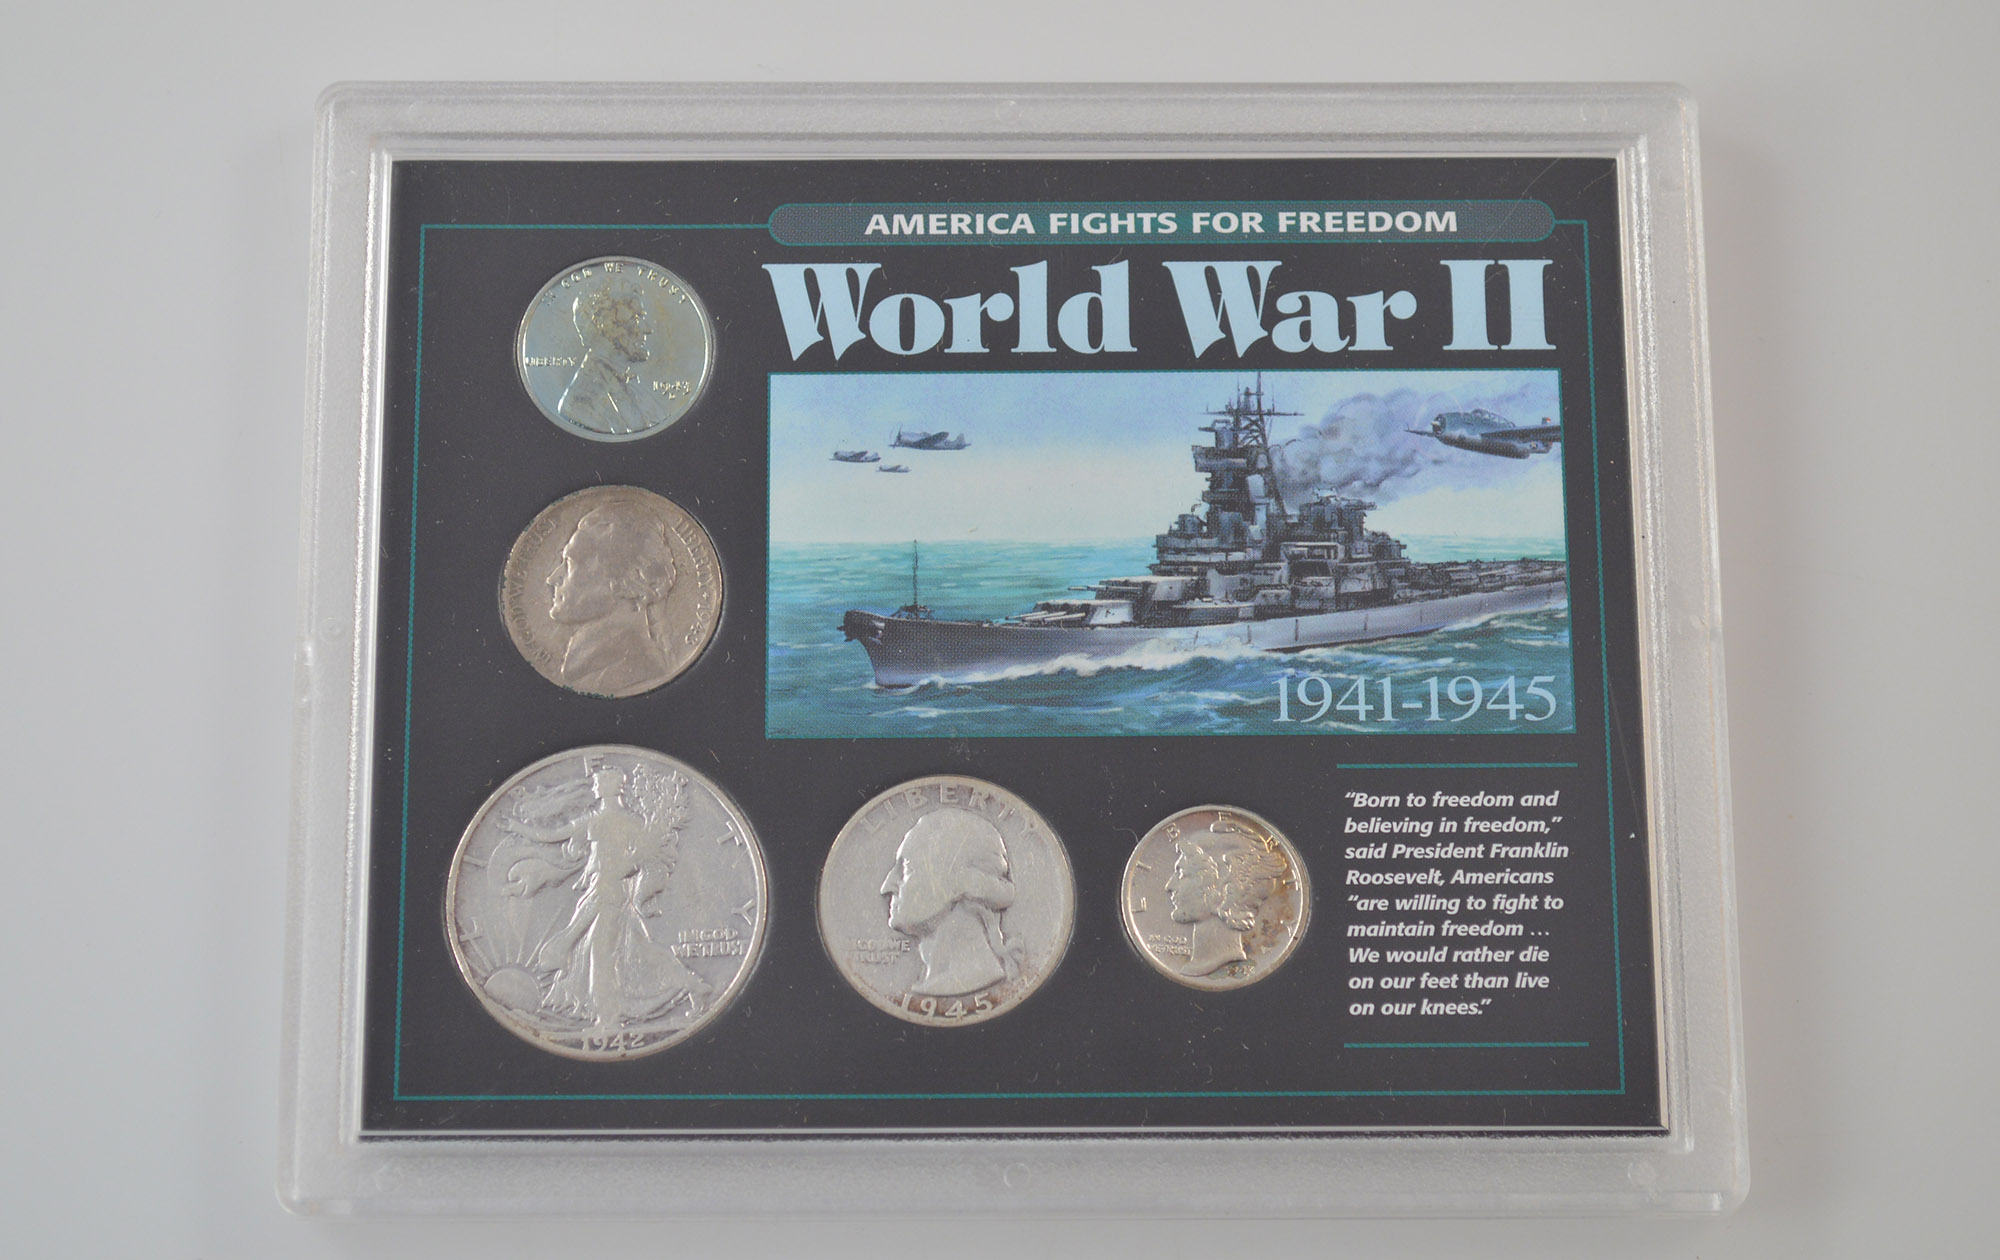 America Fights for Freedom World War II Fancy Packaging Coin